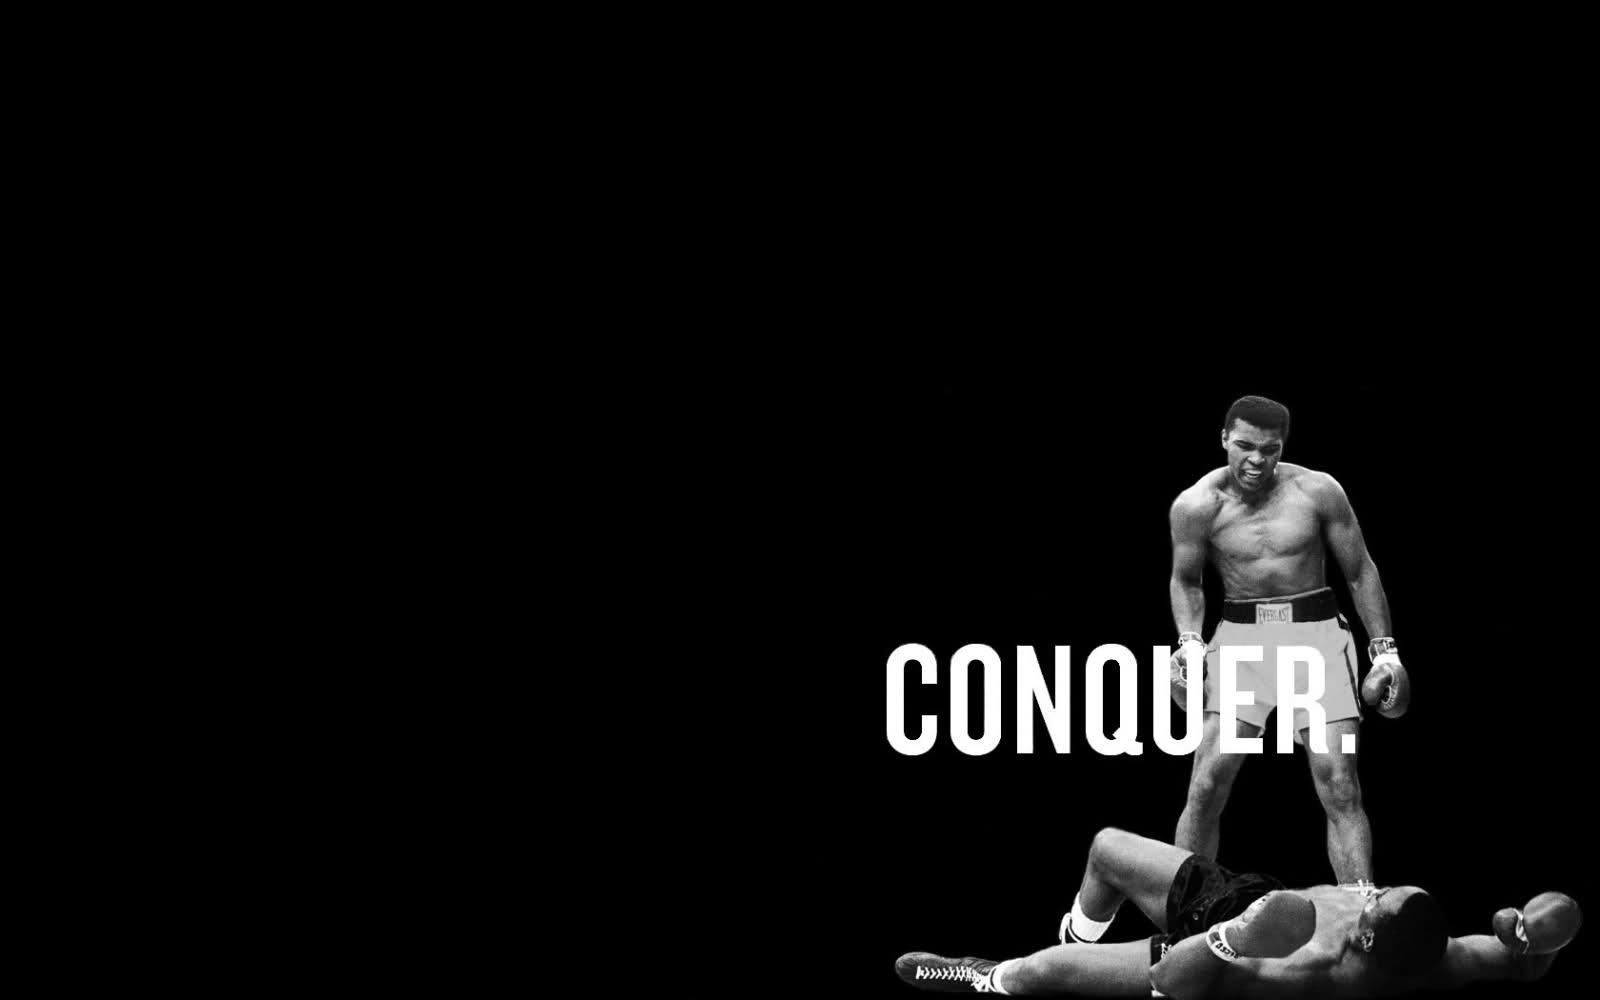 Sport Wallpaper Motivation: Nike Motivational Wallpapers